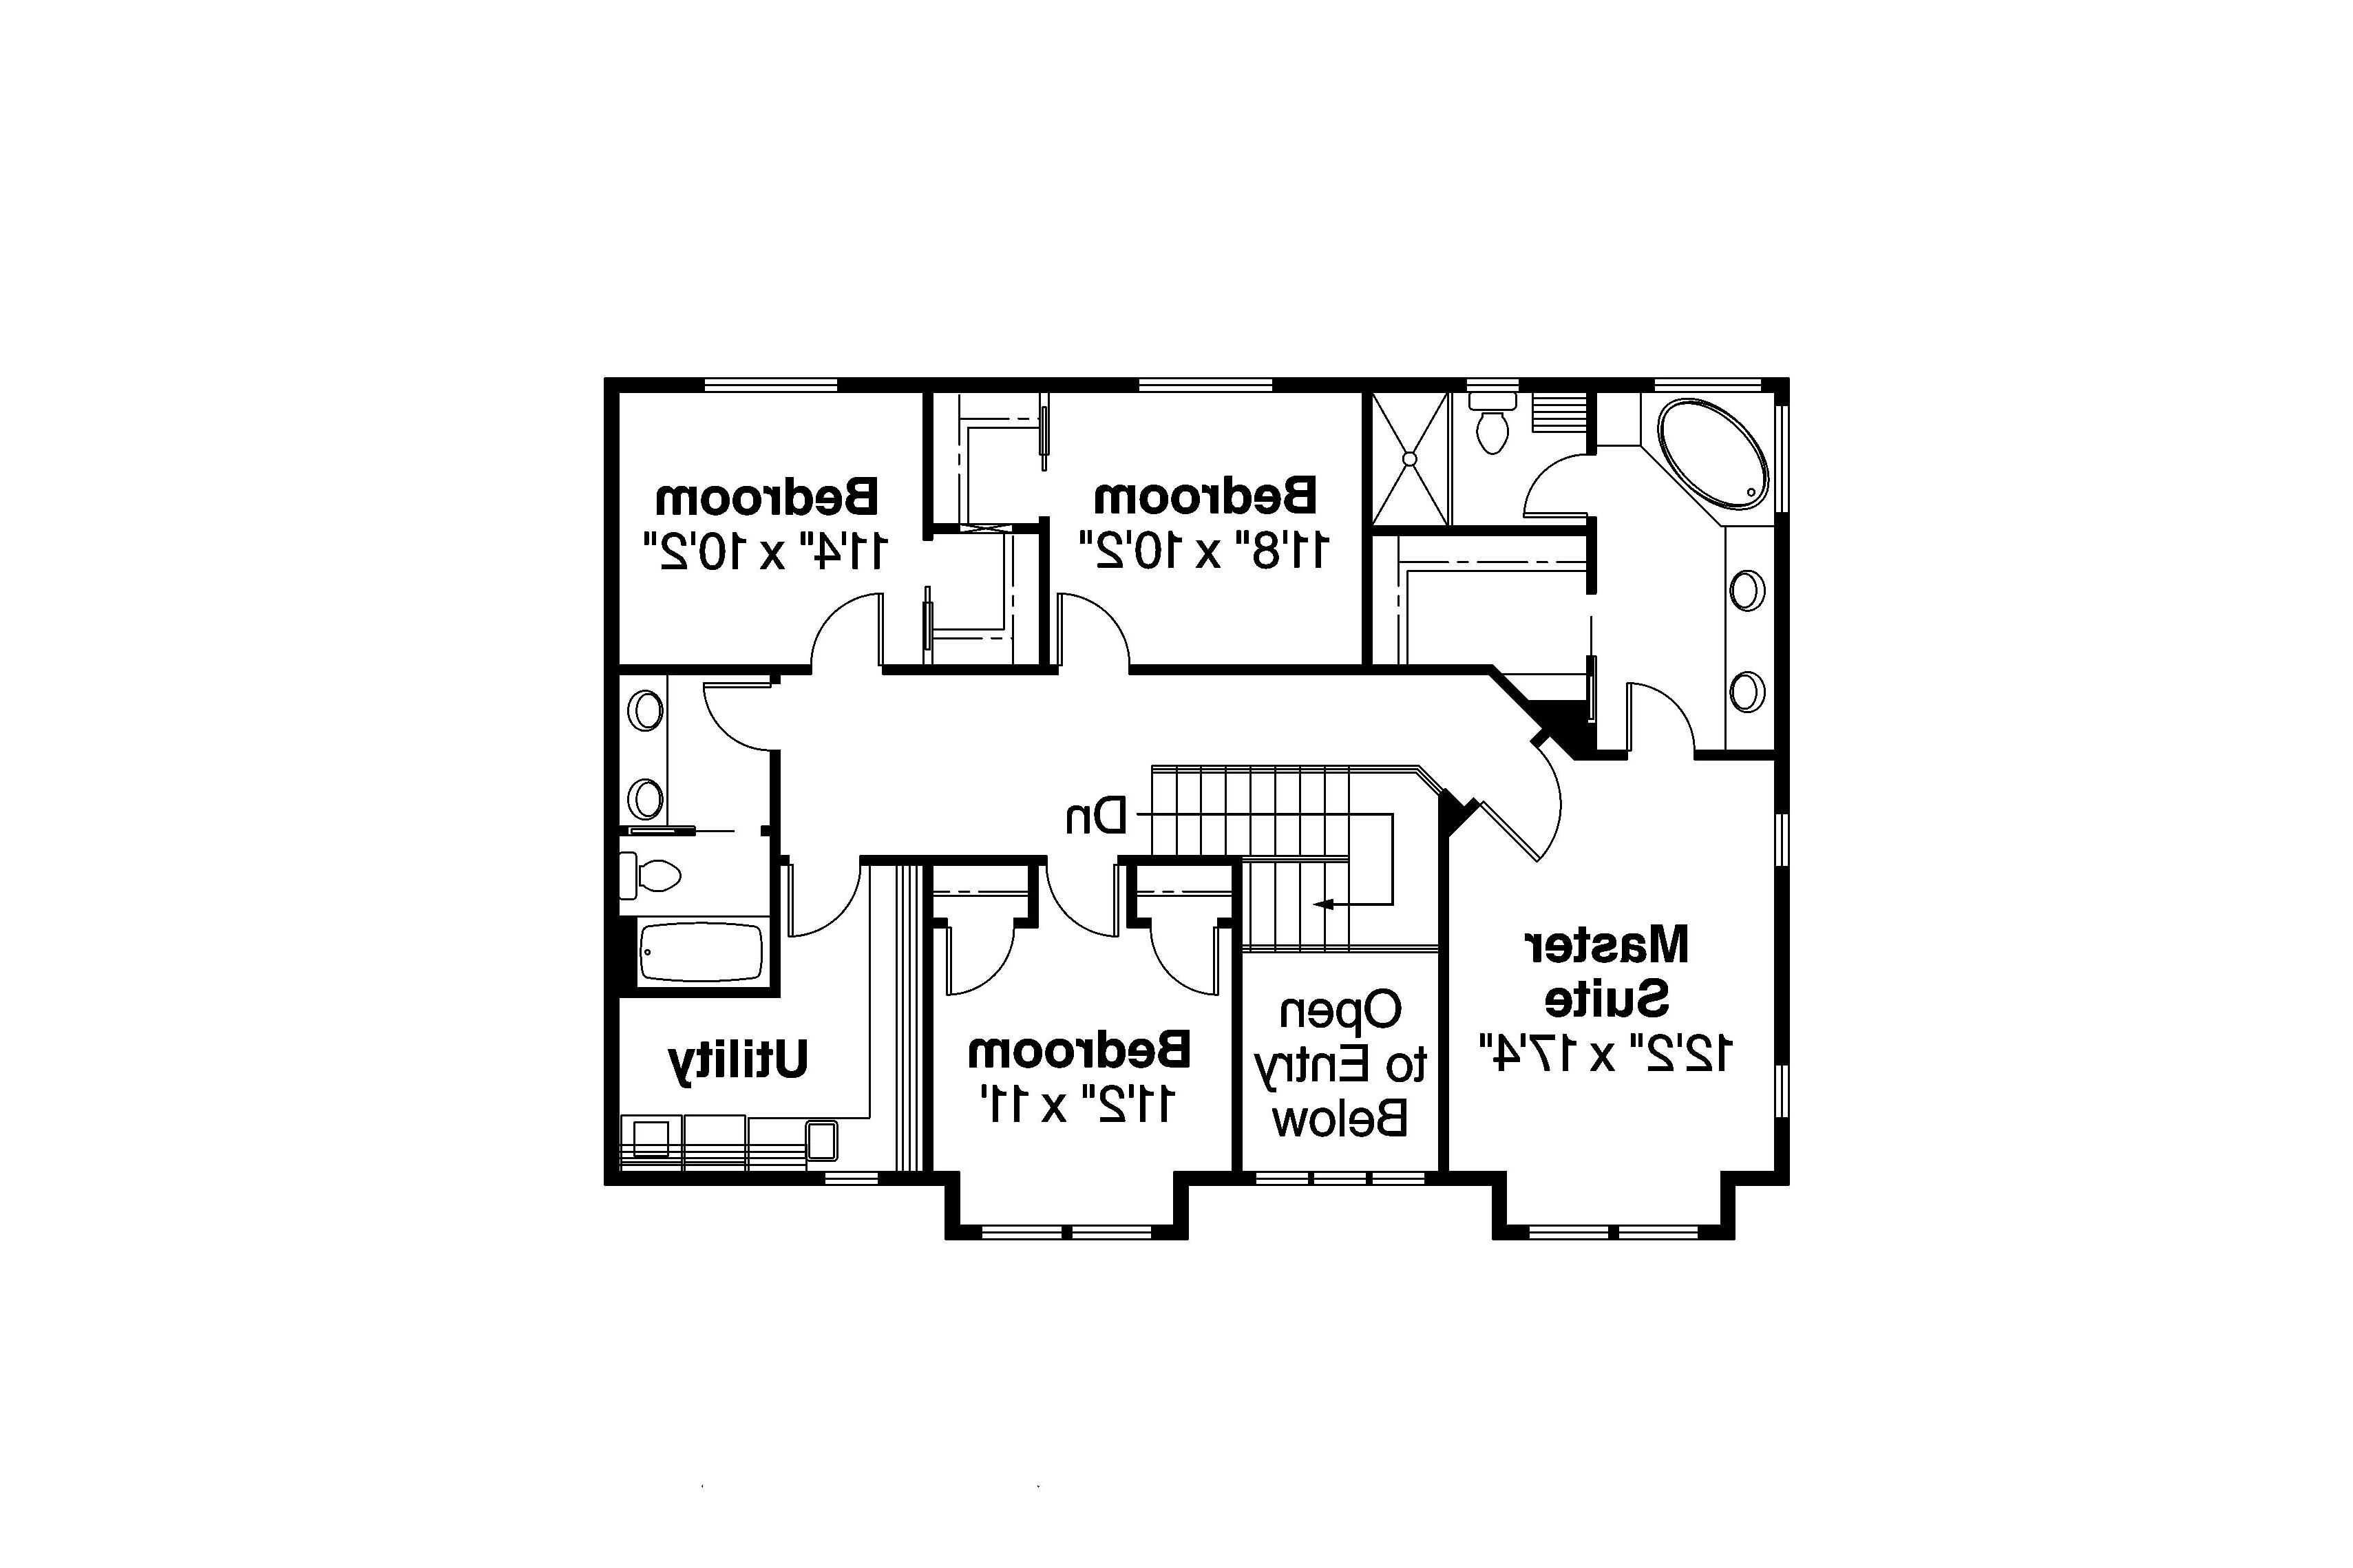 Bungalow Floor Plans 17 best ideas about bungalow floor plans on pinterest bungalow Bungalow House Plan Cavanaugh 30 490 2nd Floor Plan